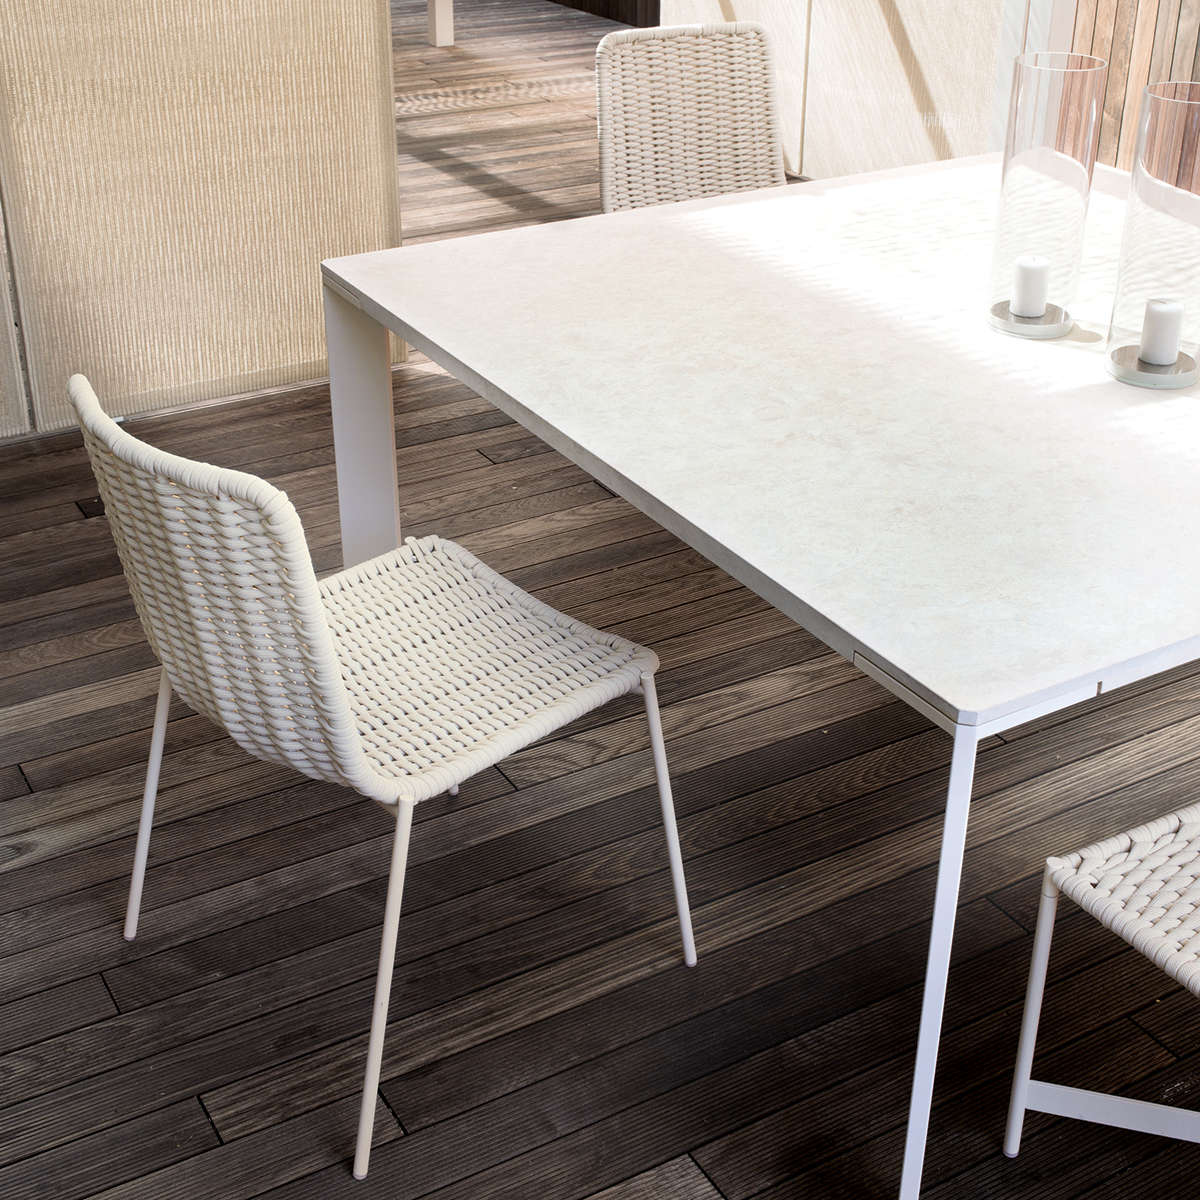 Paola Lenti Kiti Dining Chair Ambient 5